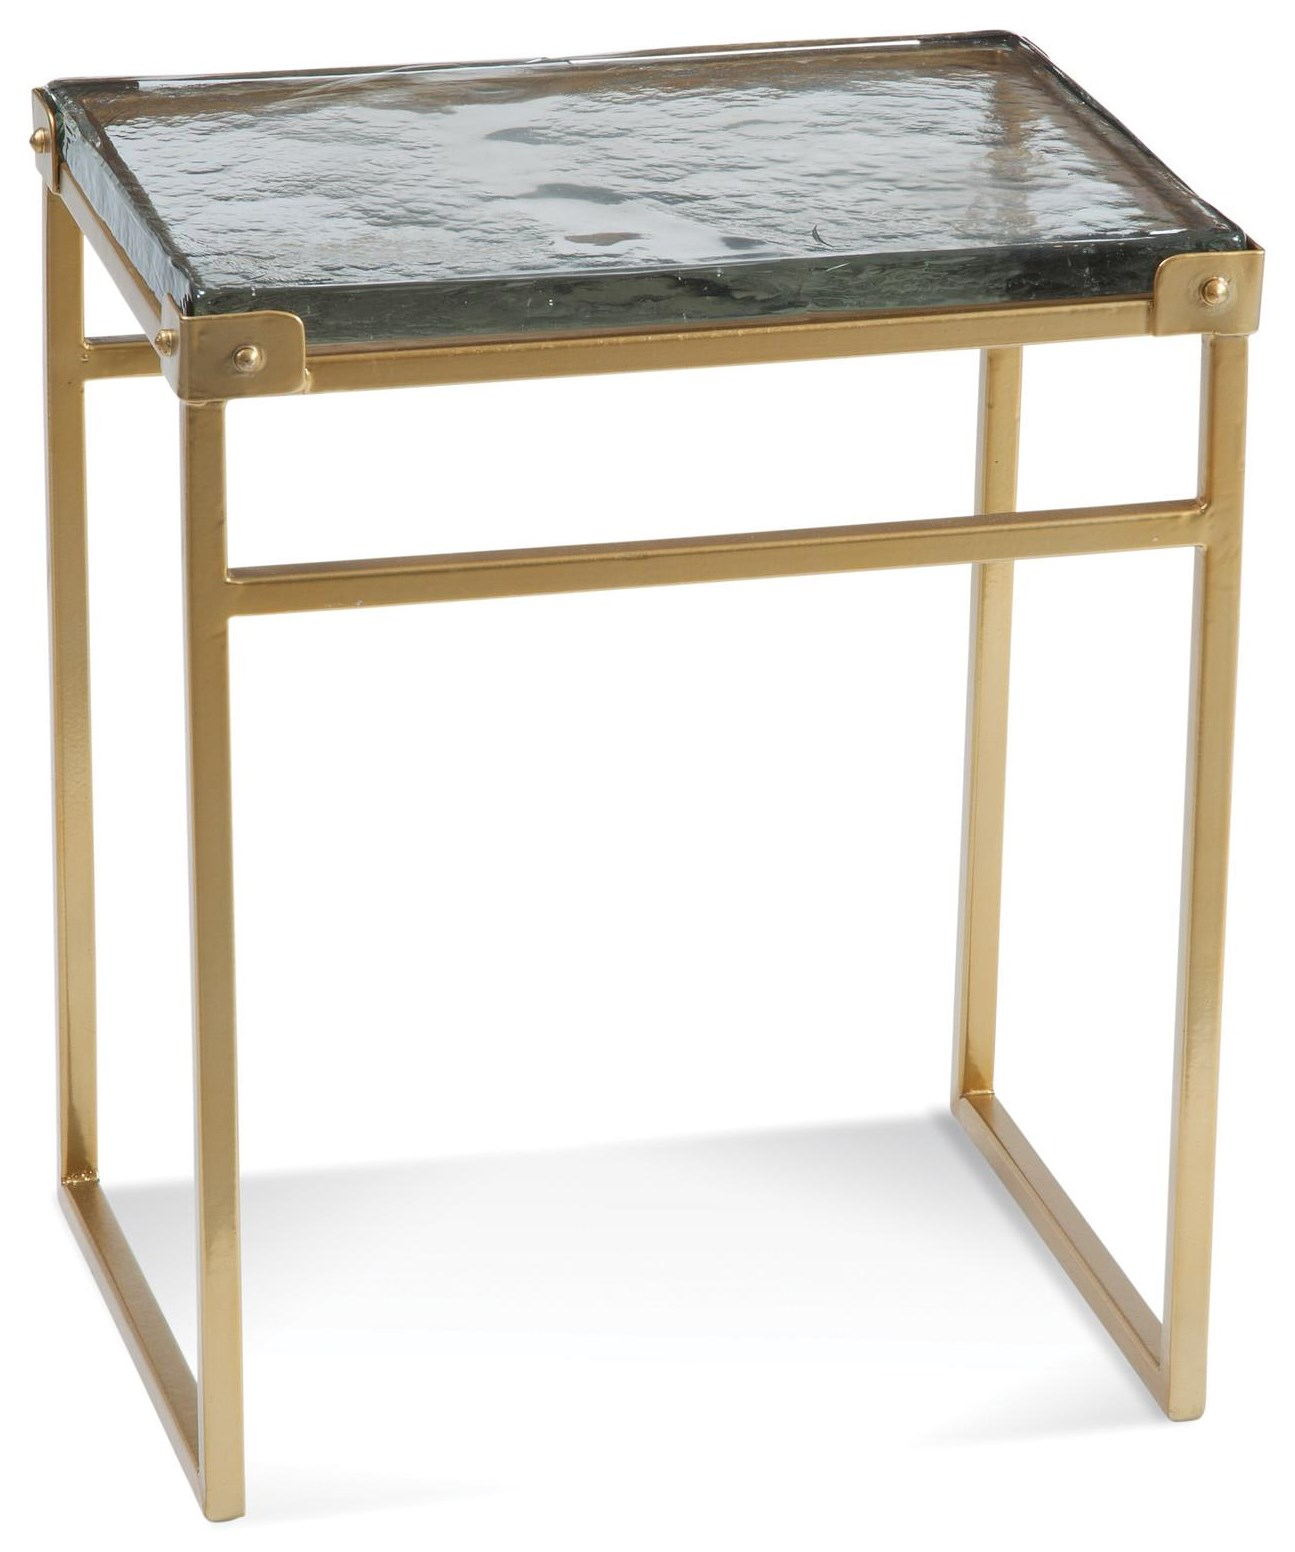 Radley Accent Table by Bassett Mirror at Johnny Janosik